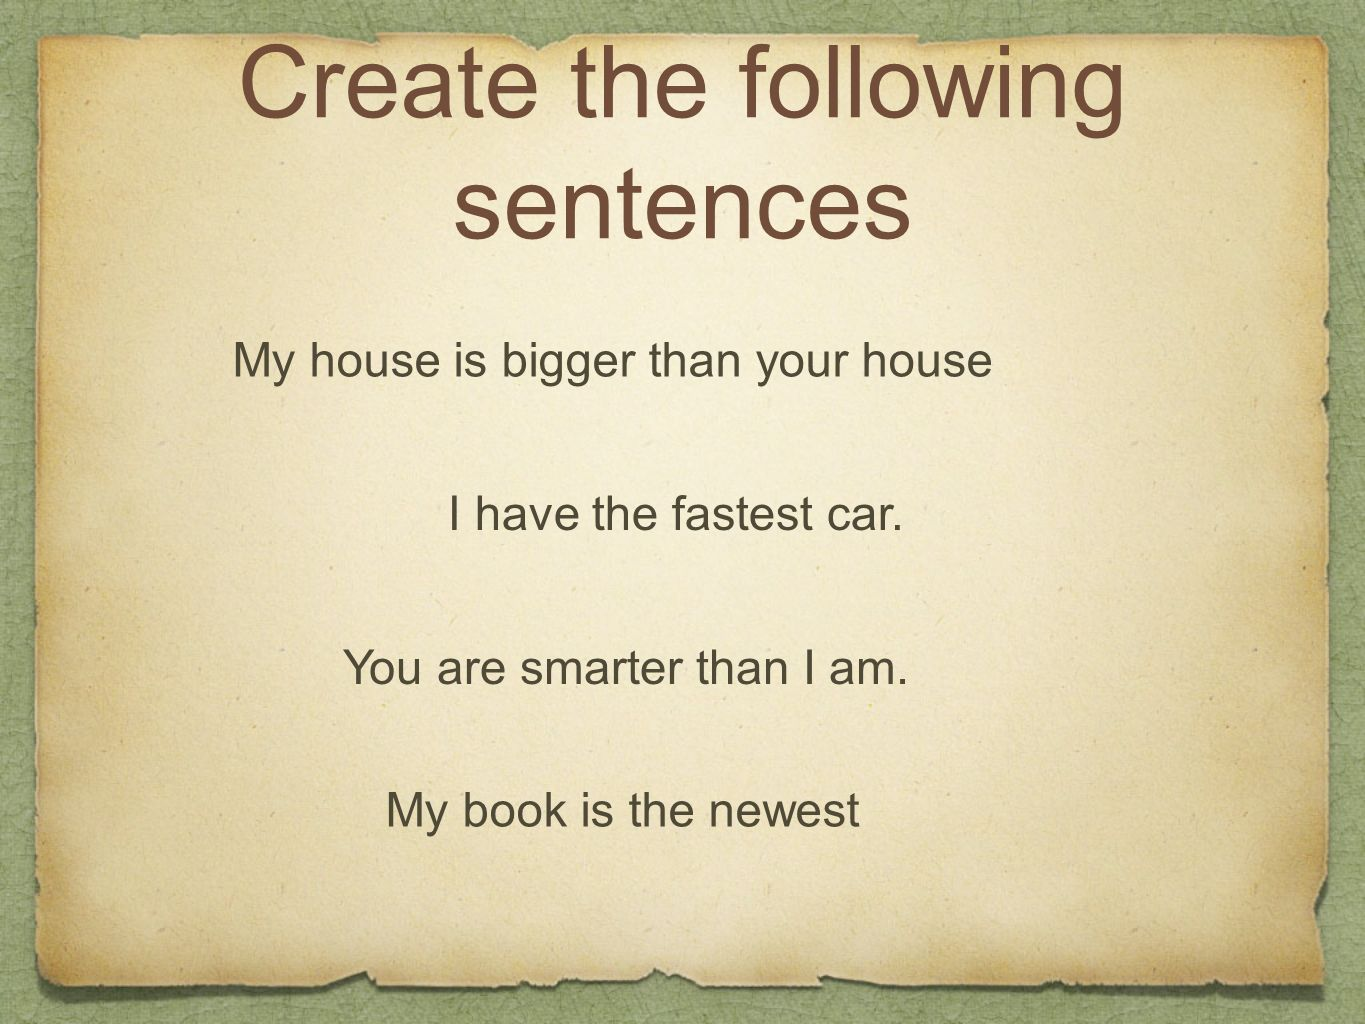 Create the following sentences My house is bigger than your house I have the fastest car. You are smarter than I am. My book is the newest